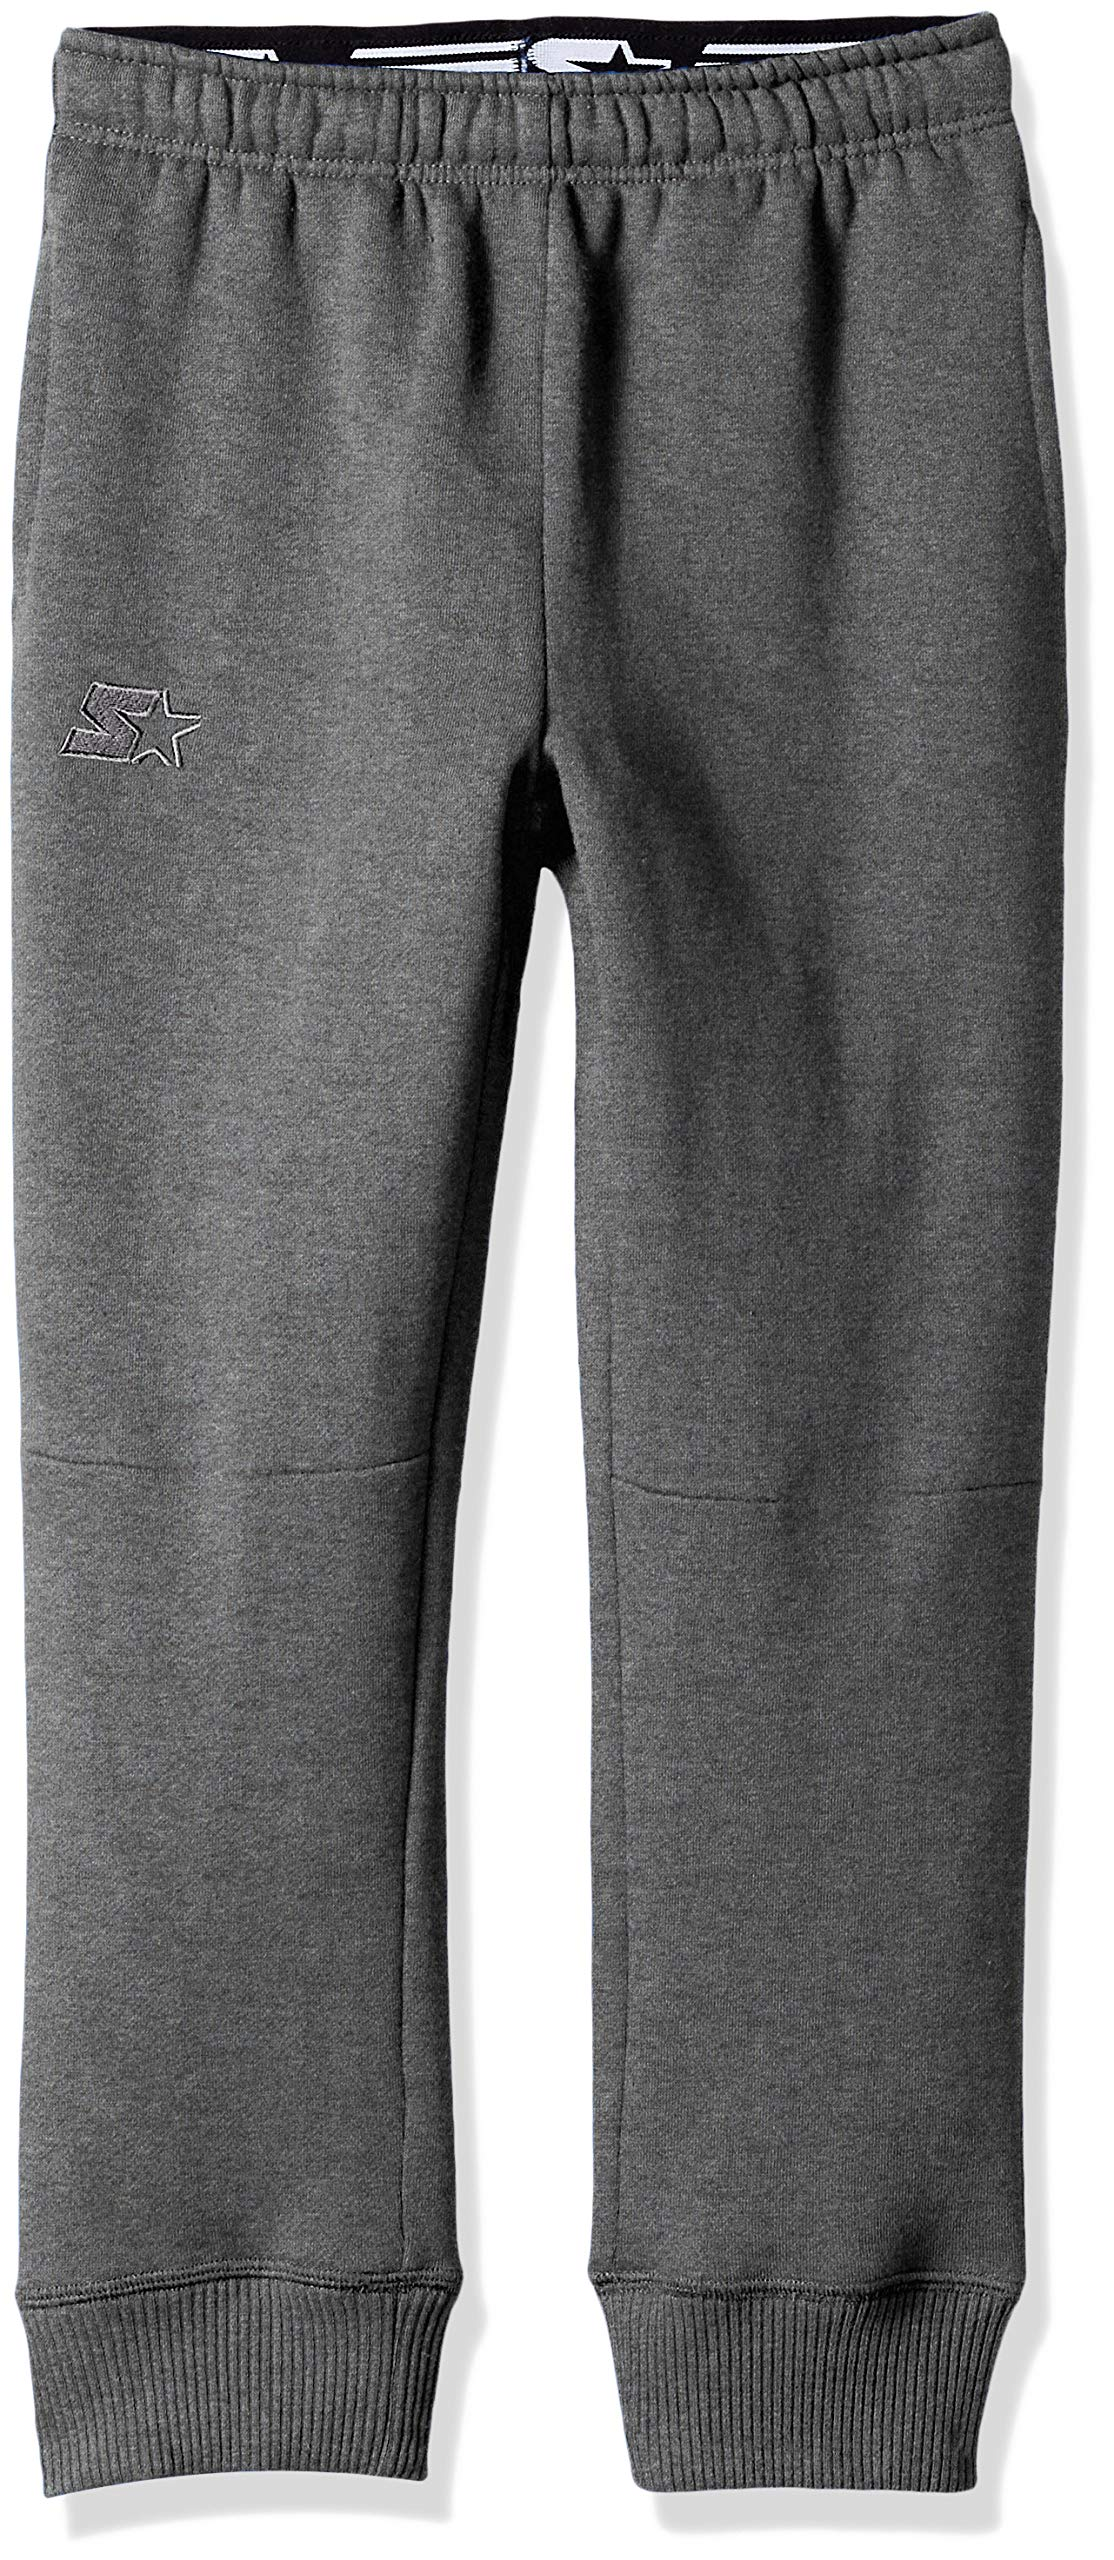 Starter Boys' Jogger Sweatpants with Pockets, Amazon Exclusive, Iron Grey Heather with Embroidered Logo, M (8/10)